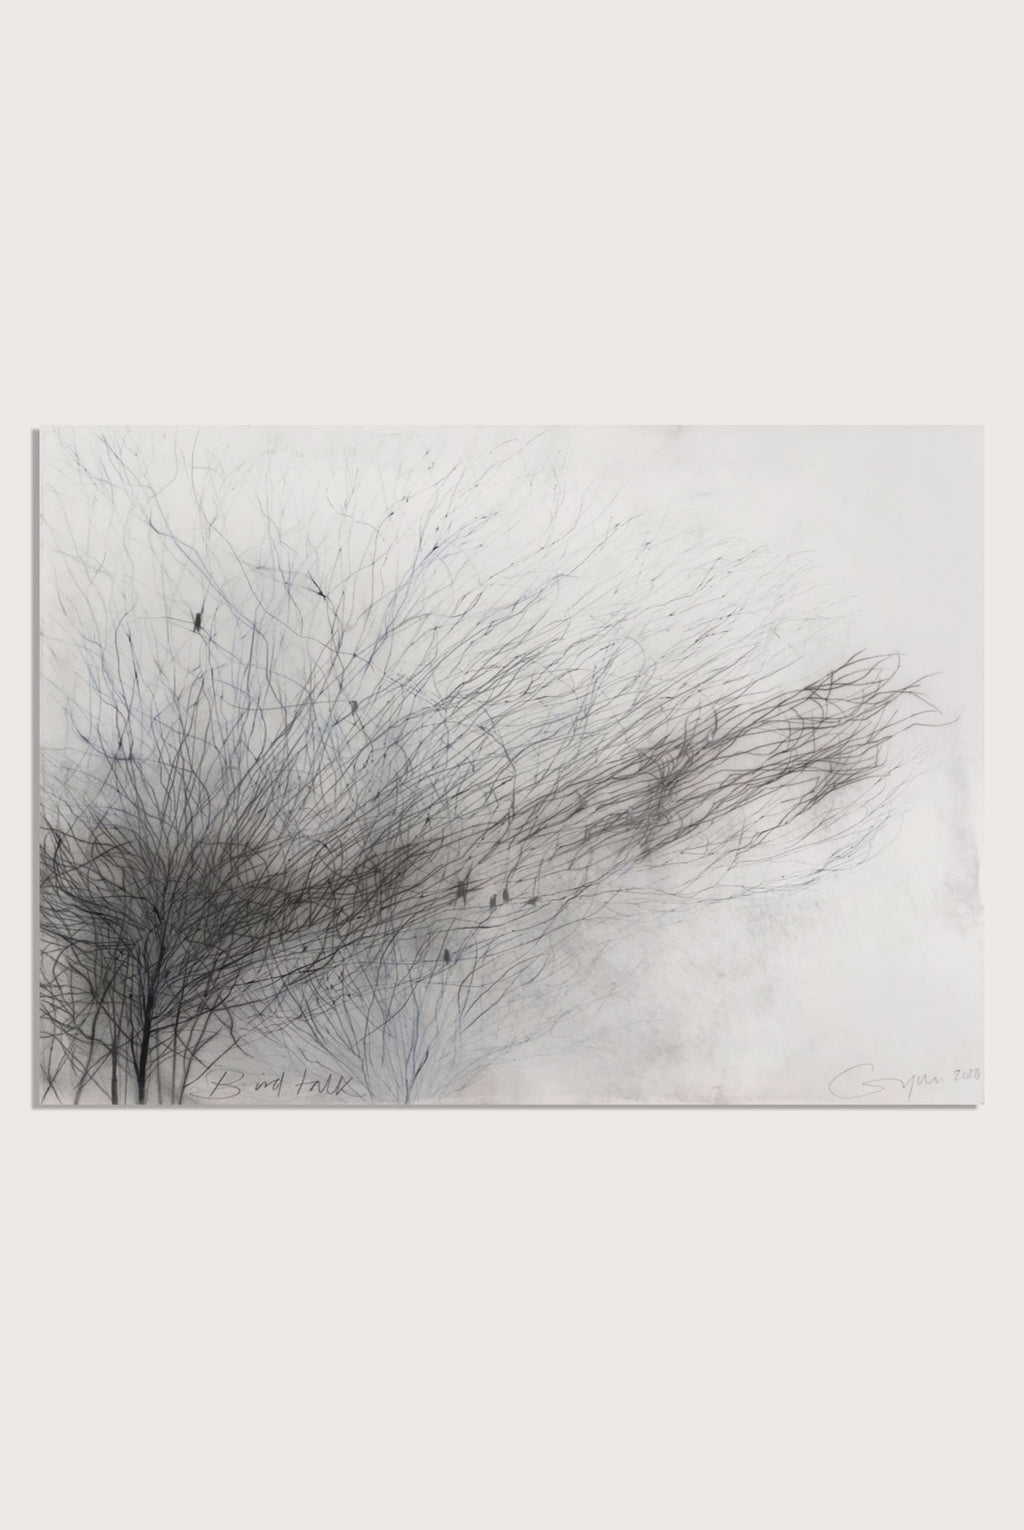 'Bird Talk', a representational drawing by woman artist Frances Gynn